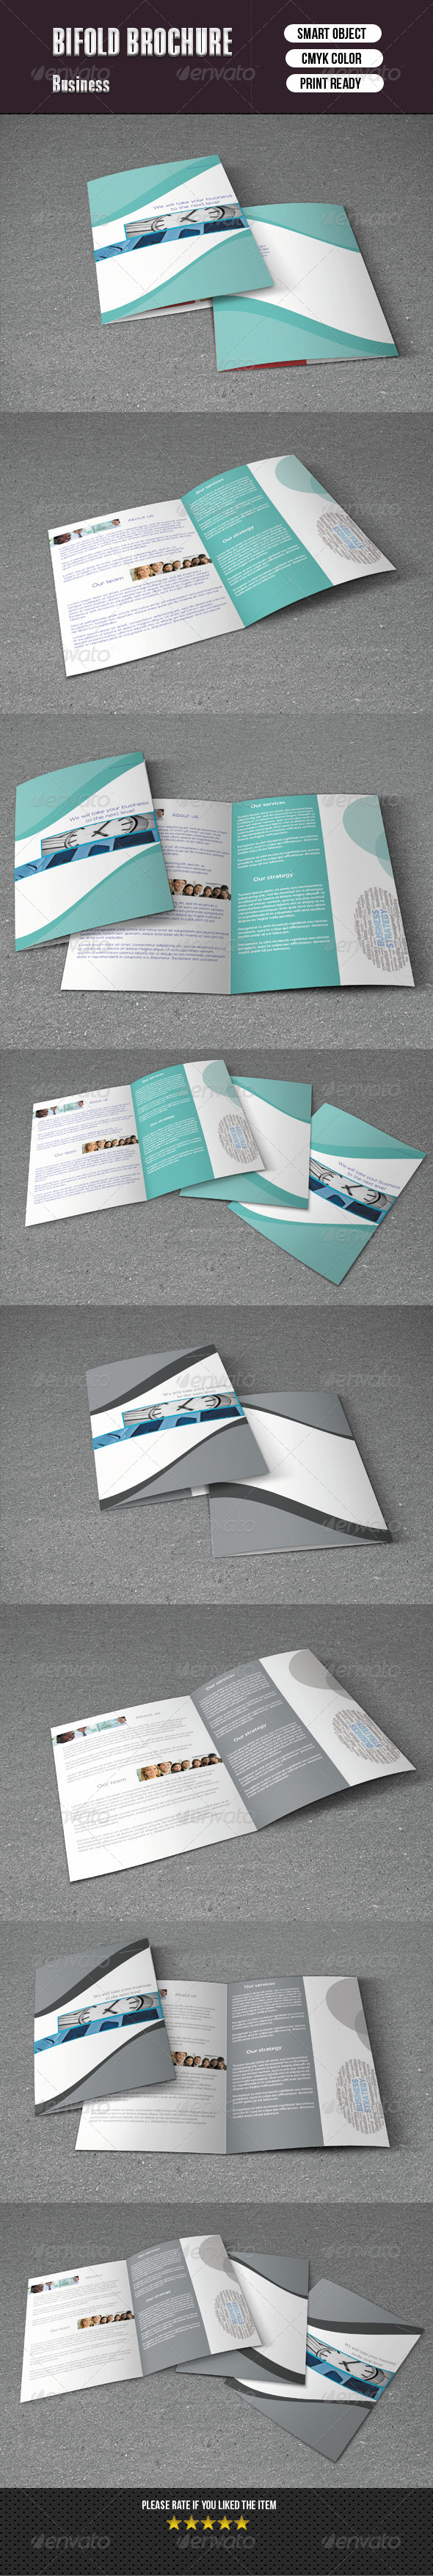 Bifold Brochure For Business - 2 Color Version - Corporate Brochures